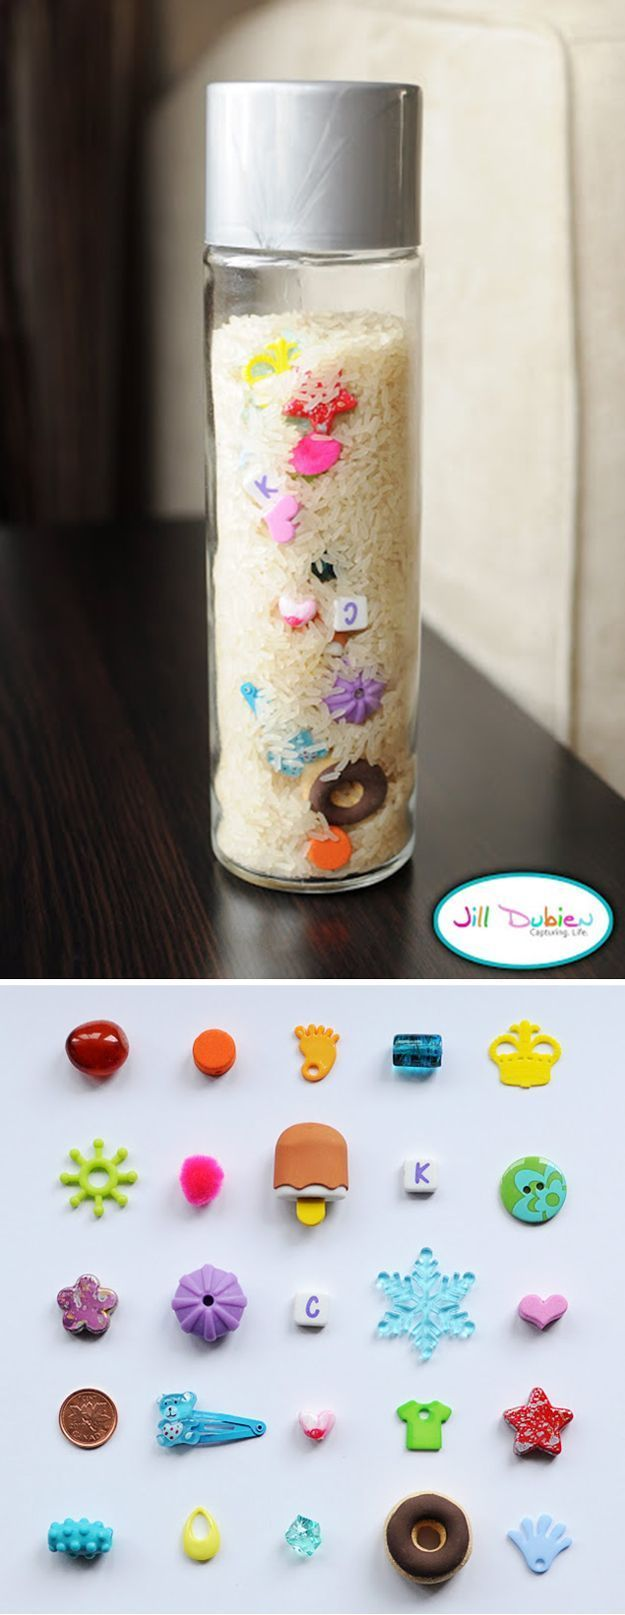 1000 ideas about detective crafts on pinterest crafts for Spy crafts for kids